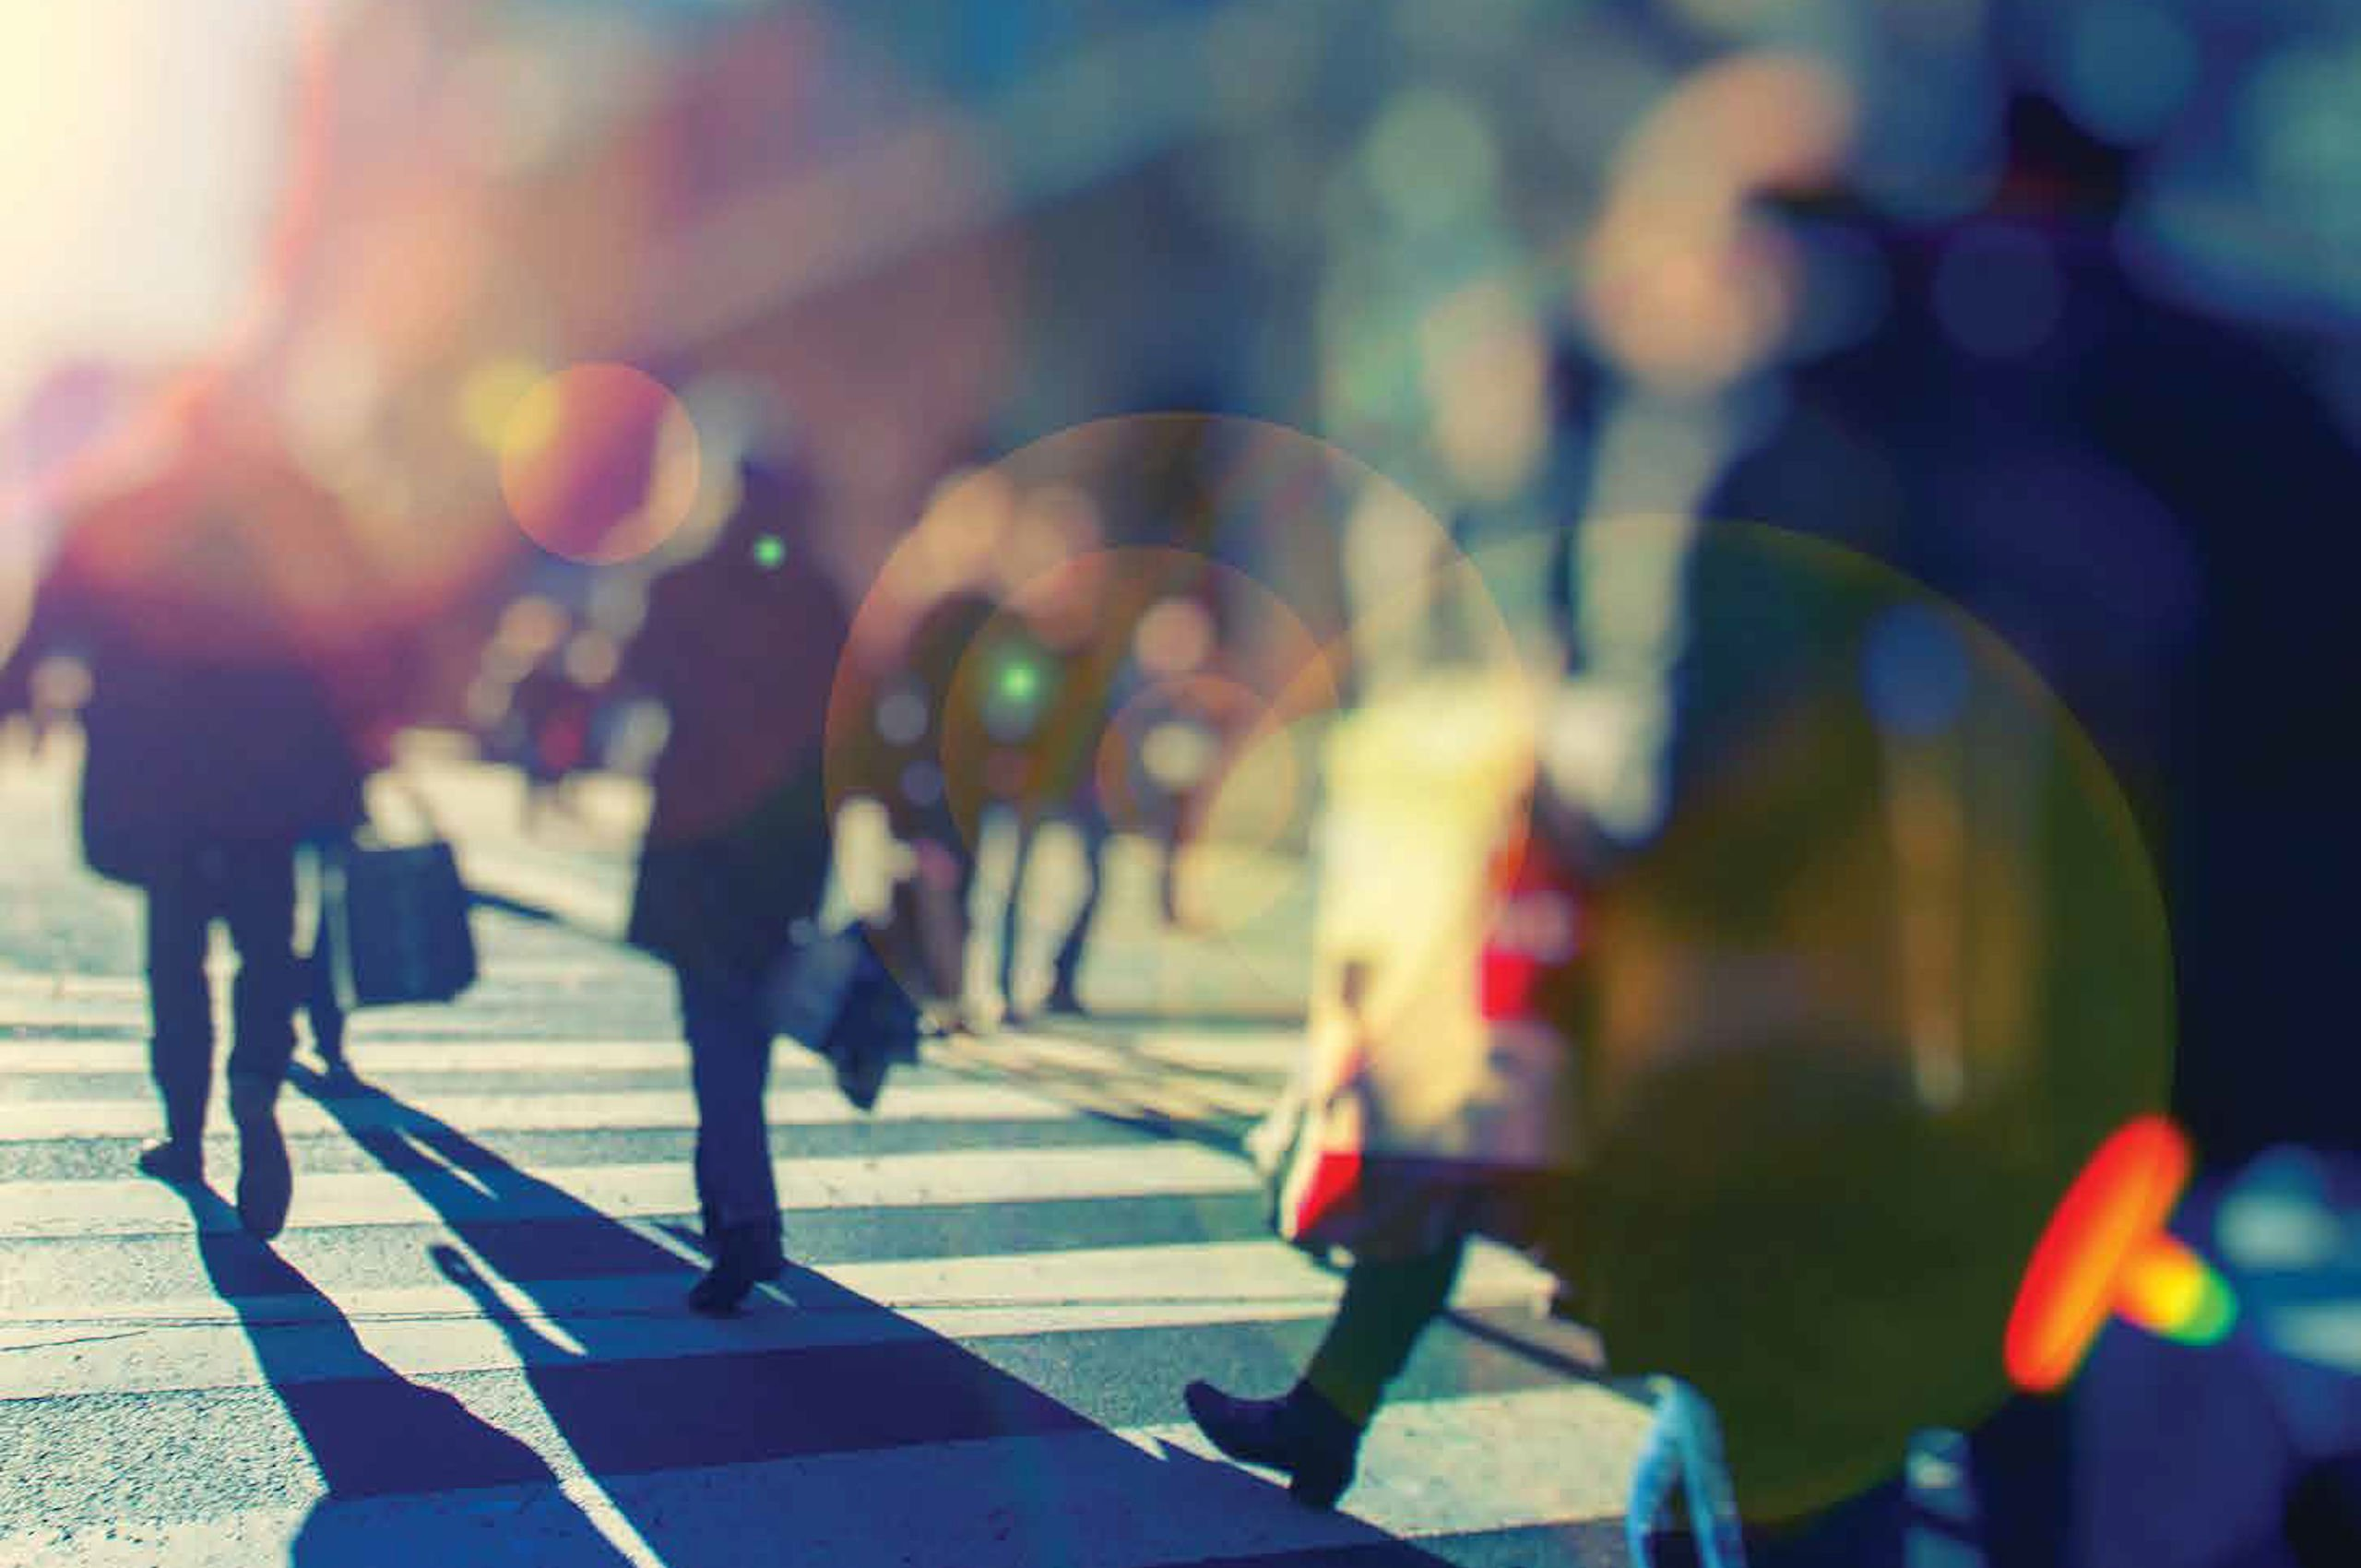 High-contrast, partly blurred image of people walking across a zebra crossing with colourful lens flare